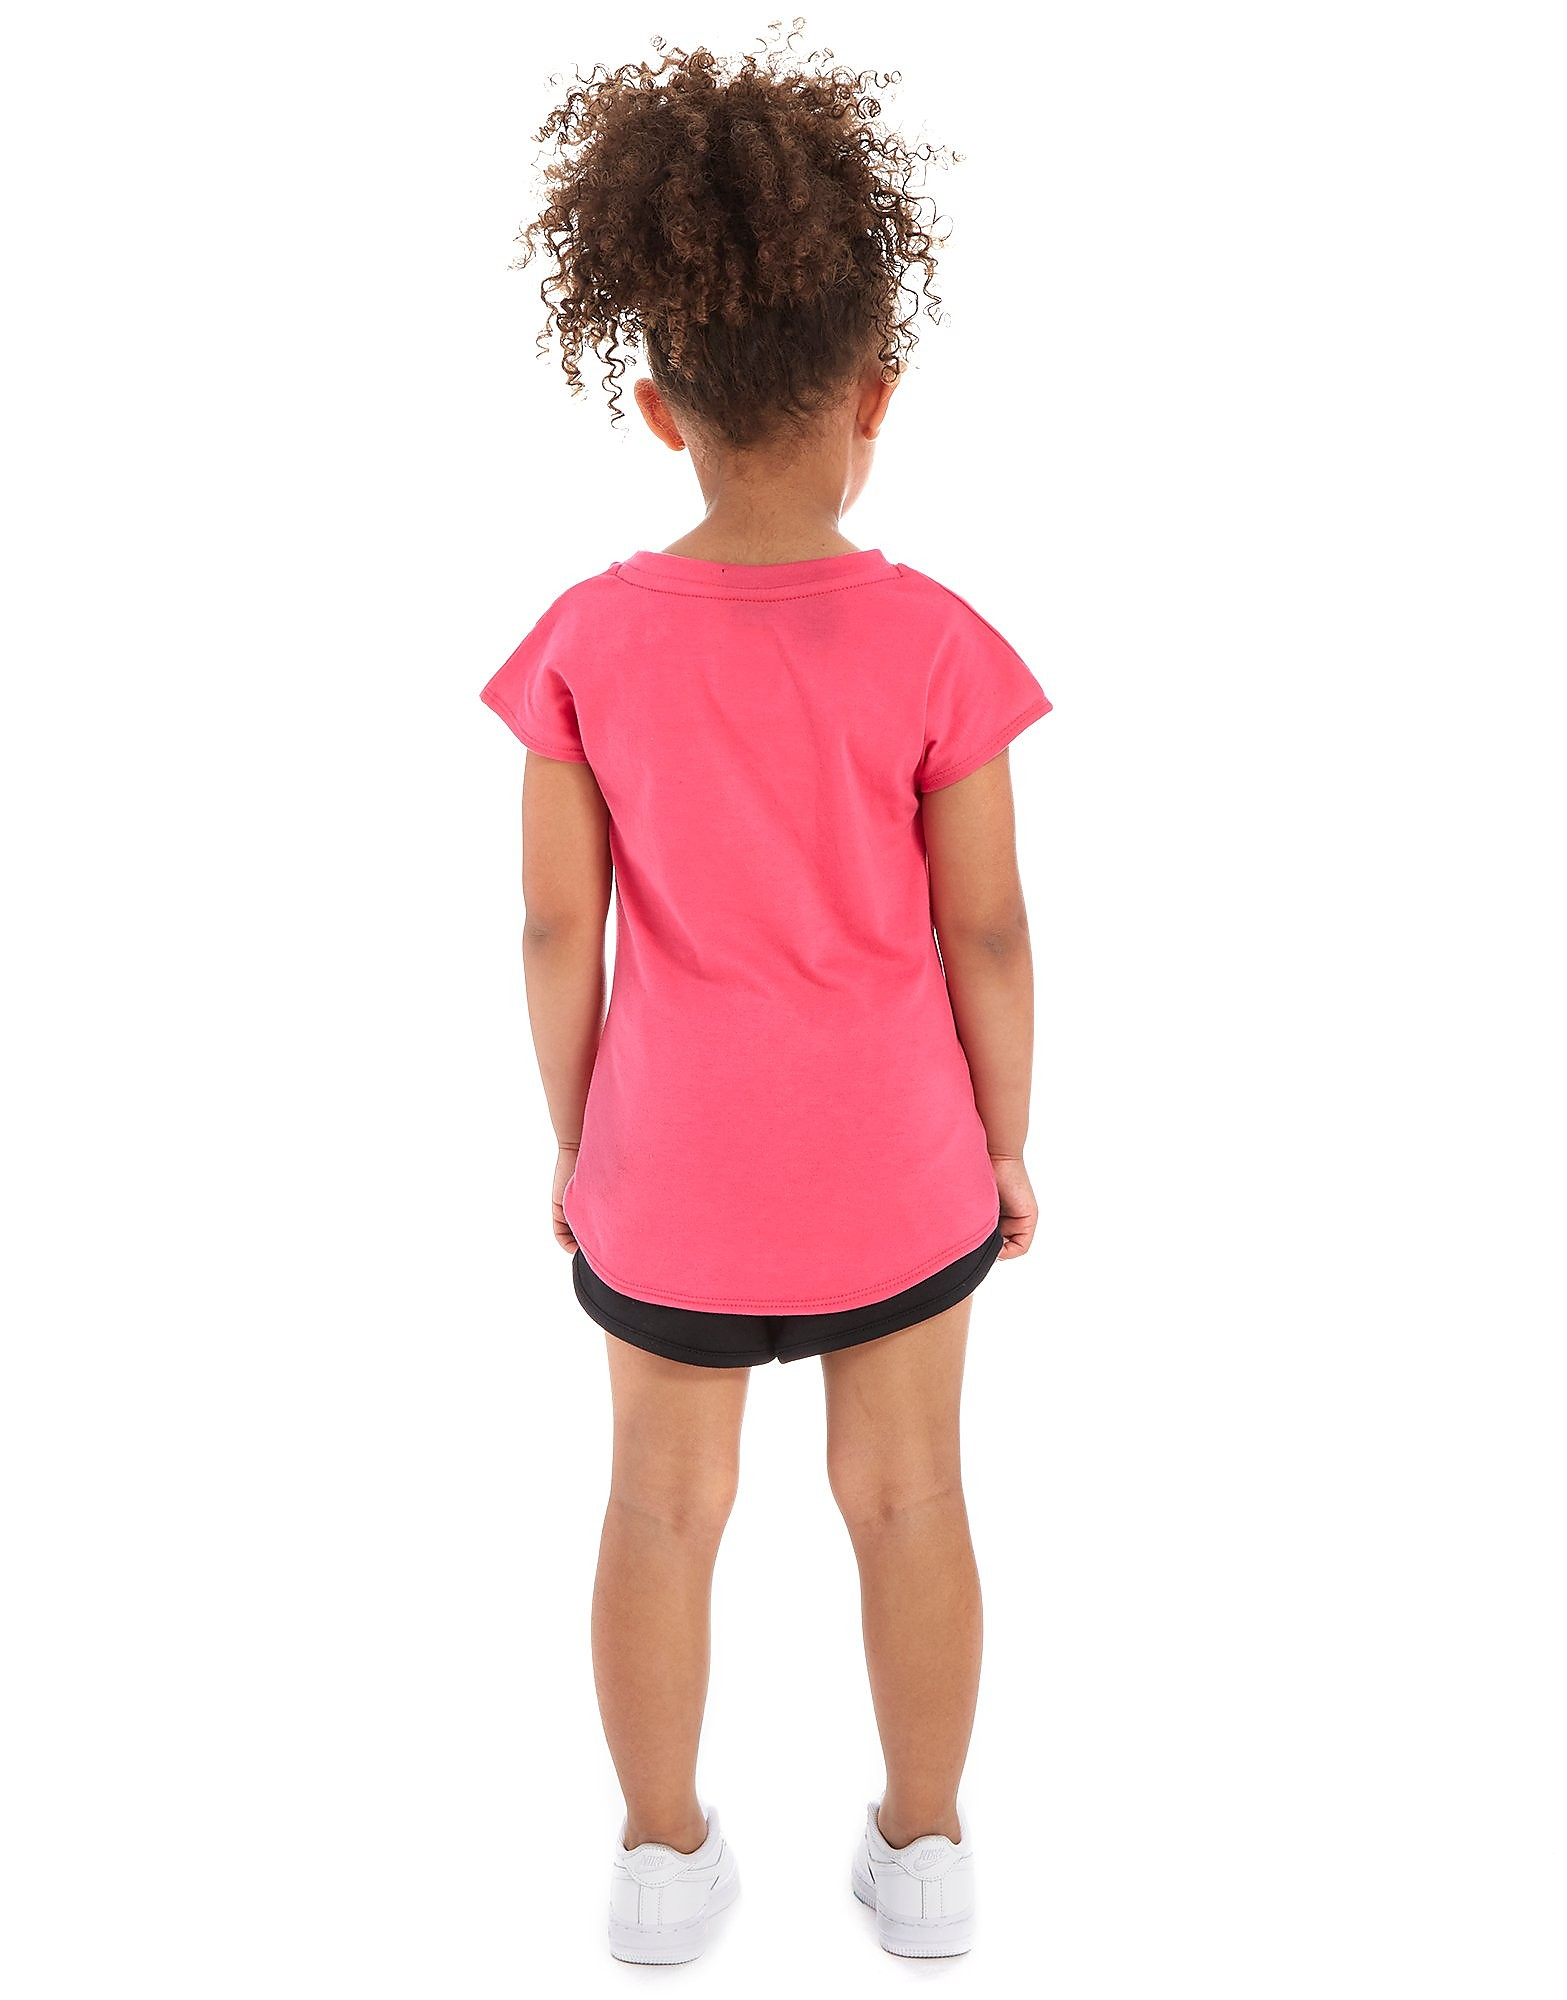 Nike Girls' T-Shirt + Short Set Children